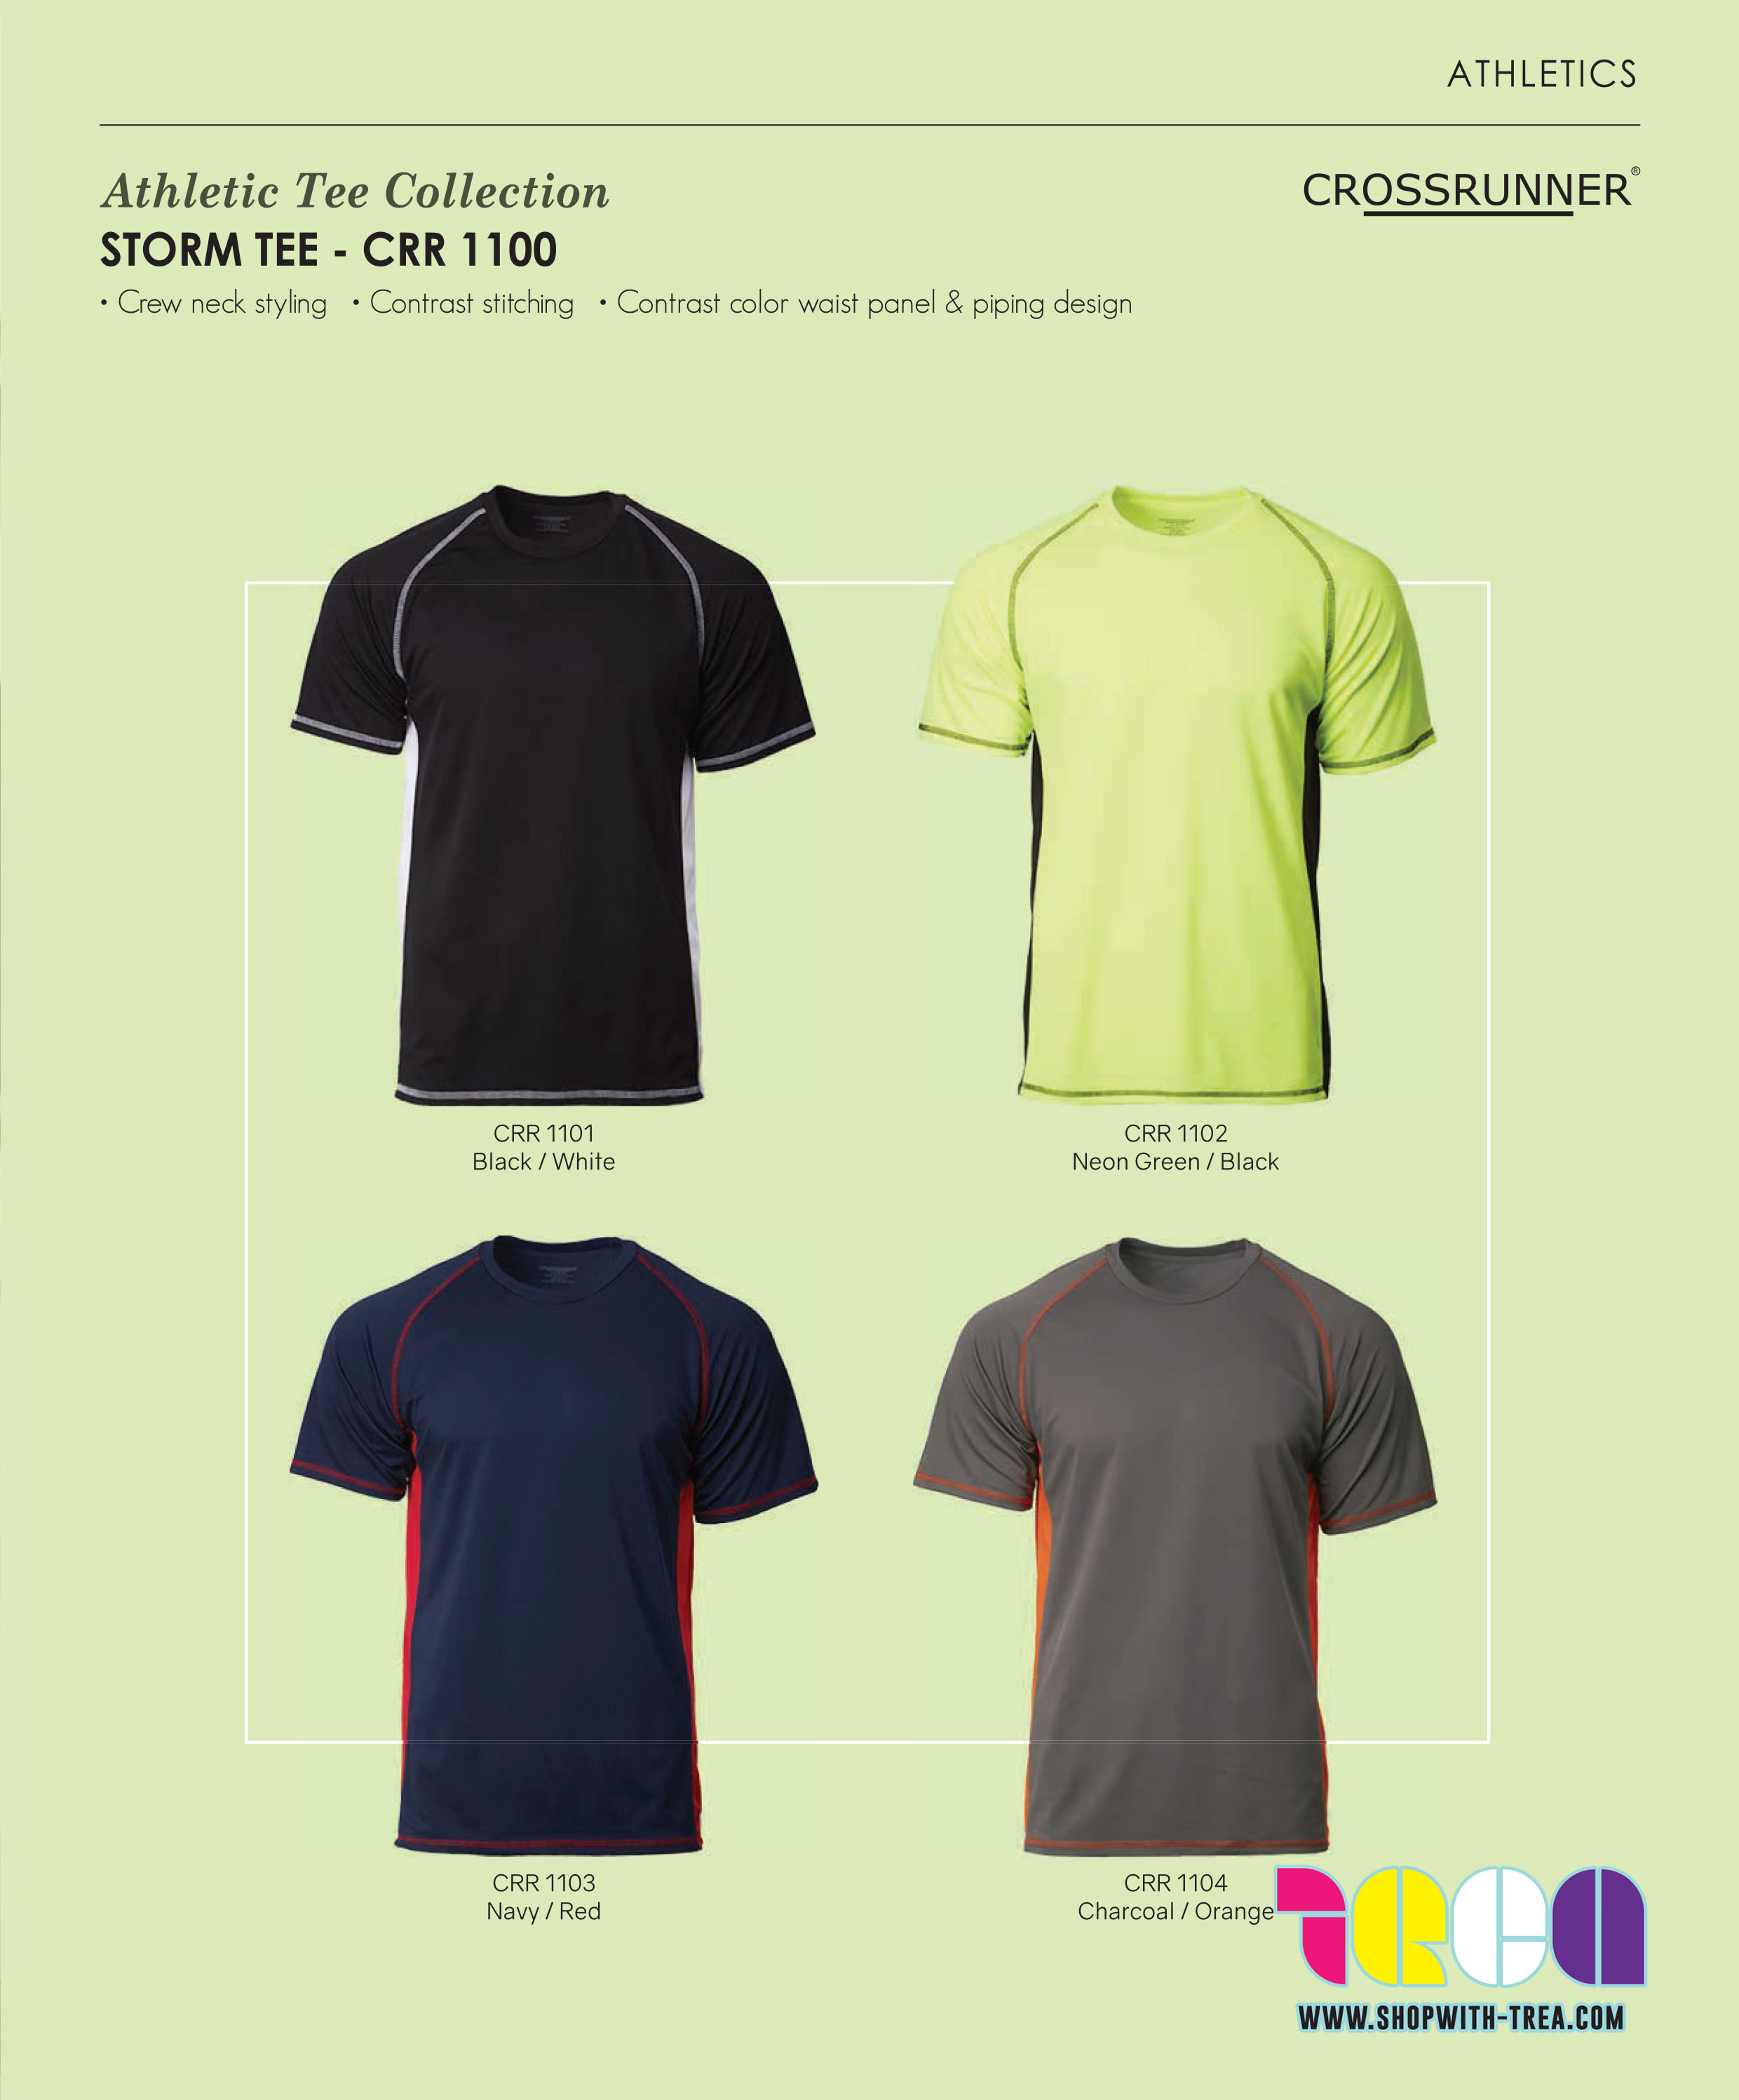 e55d19dfe Dri fit tee printing and supply at MOQ of 30pc with heat transfer printing  only! It can be customised with any design and bulk quantity.